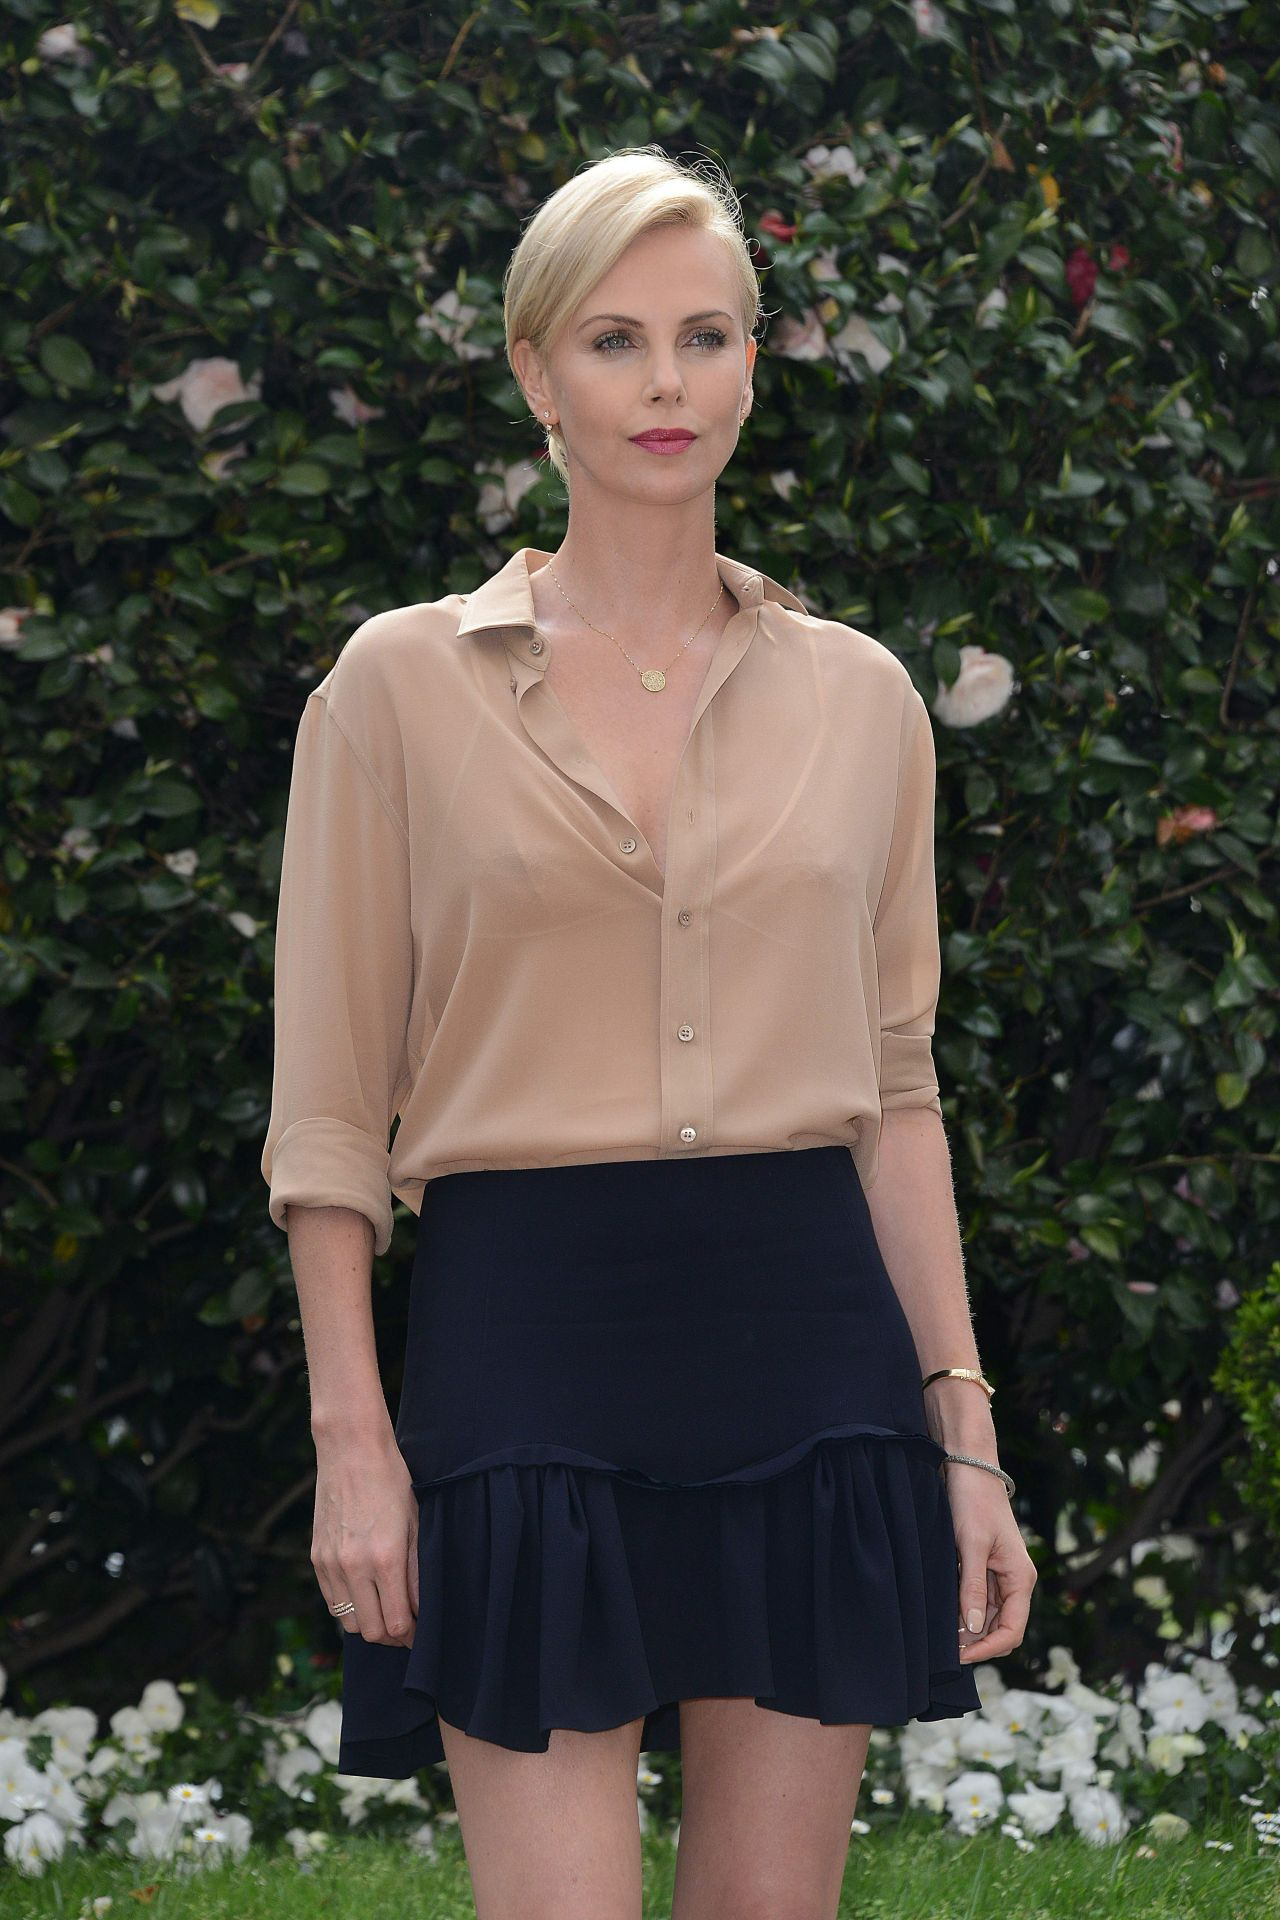 charlize-theron-the-huntsman-and-the-ice-queen-photocall-in-milan-italy-4